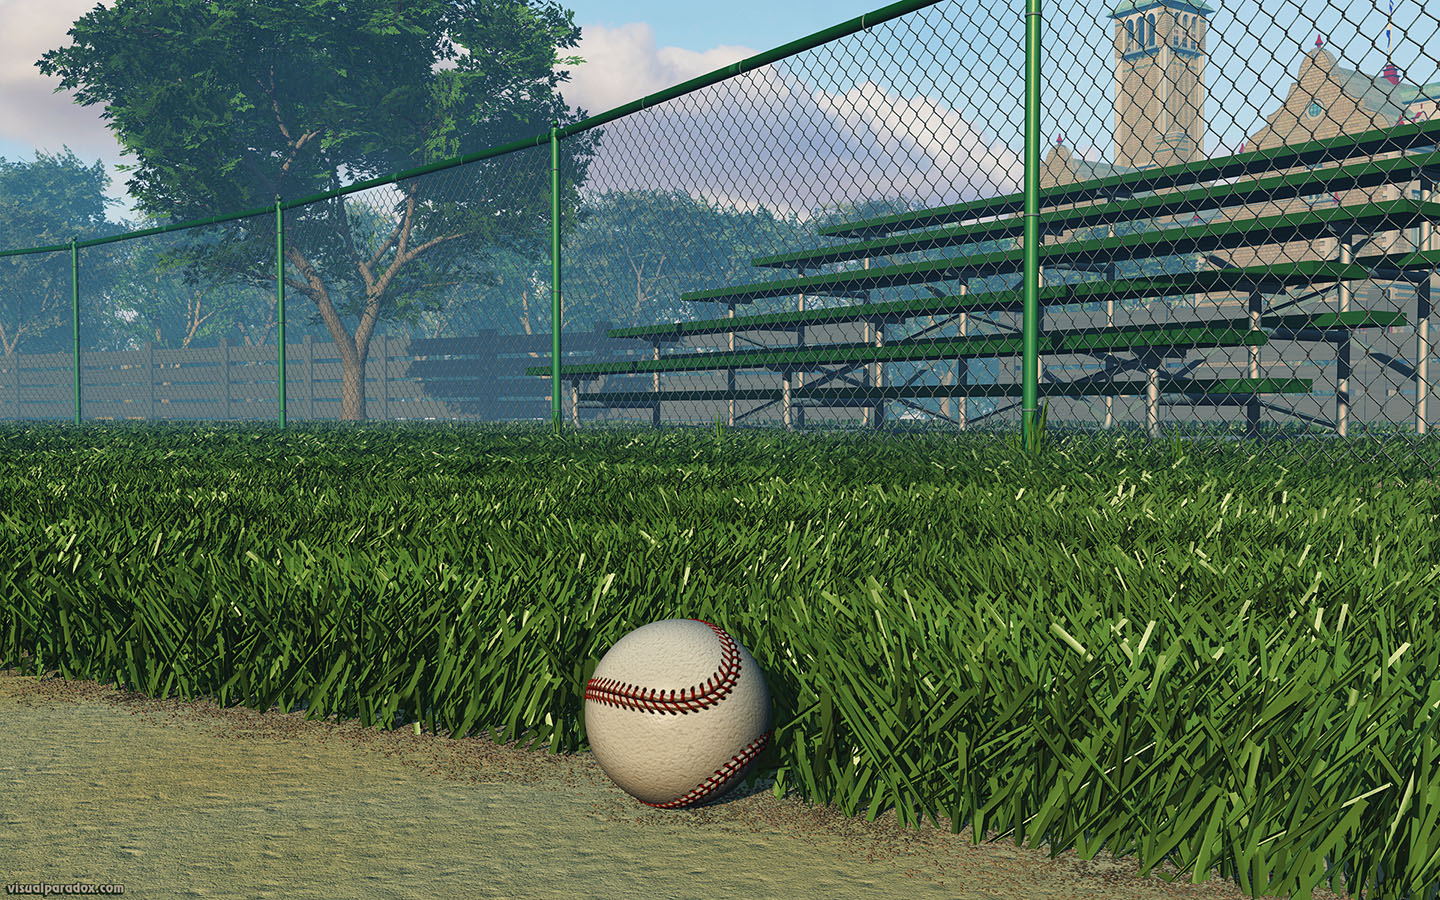 athletics, ball, base, baseball, bleachers, chain, chain-link, chainlink, clouds, diamond, dirt, empty, exercise, fence, field, first, foul, game, green, hardball, health, healthy, hit, infield, park, play, recreation, sandlot, seasonal, sky, sport, sports, stands, summer, sunny, tan, team, trees, white, woods, 3d, wallpaper, widescreen